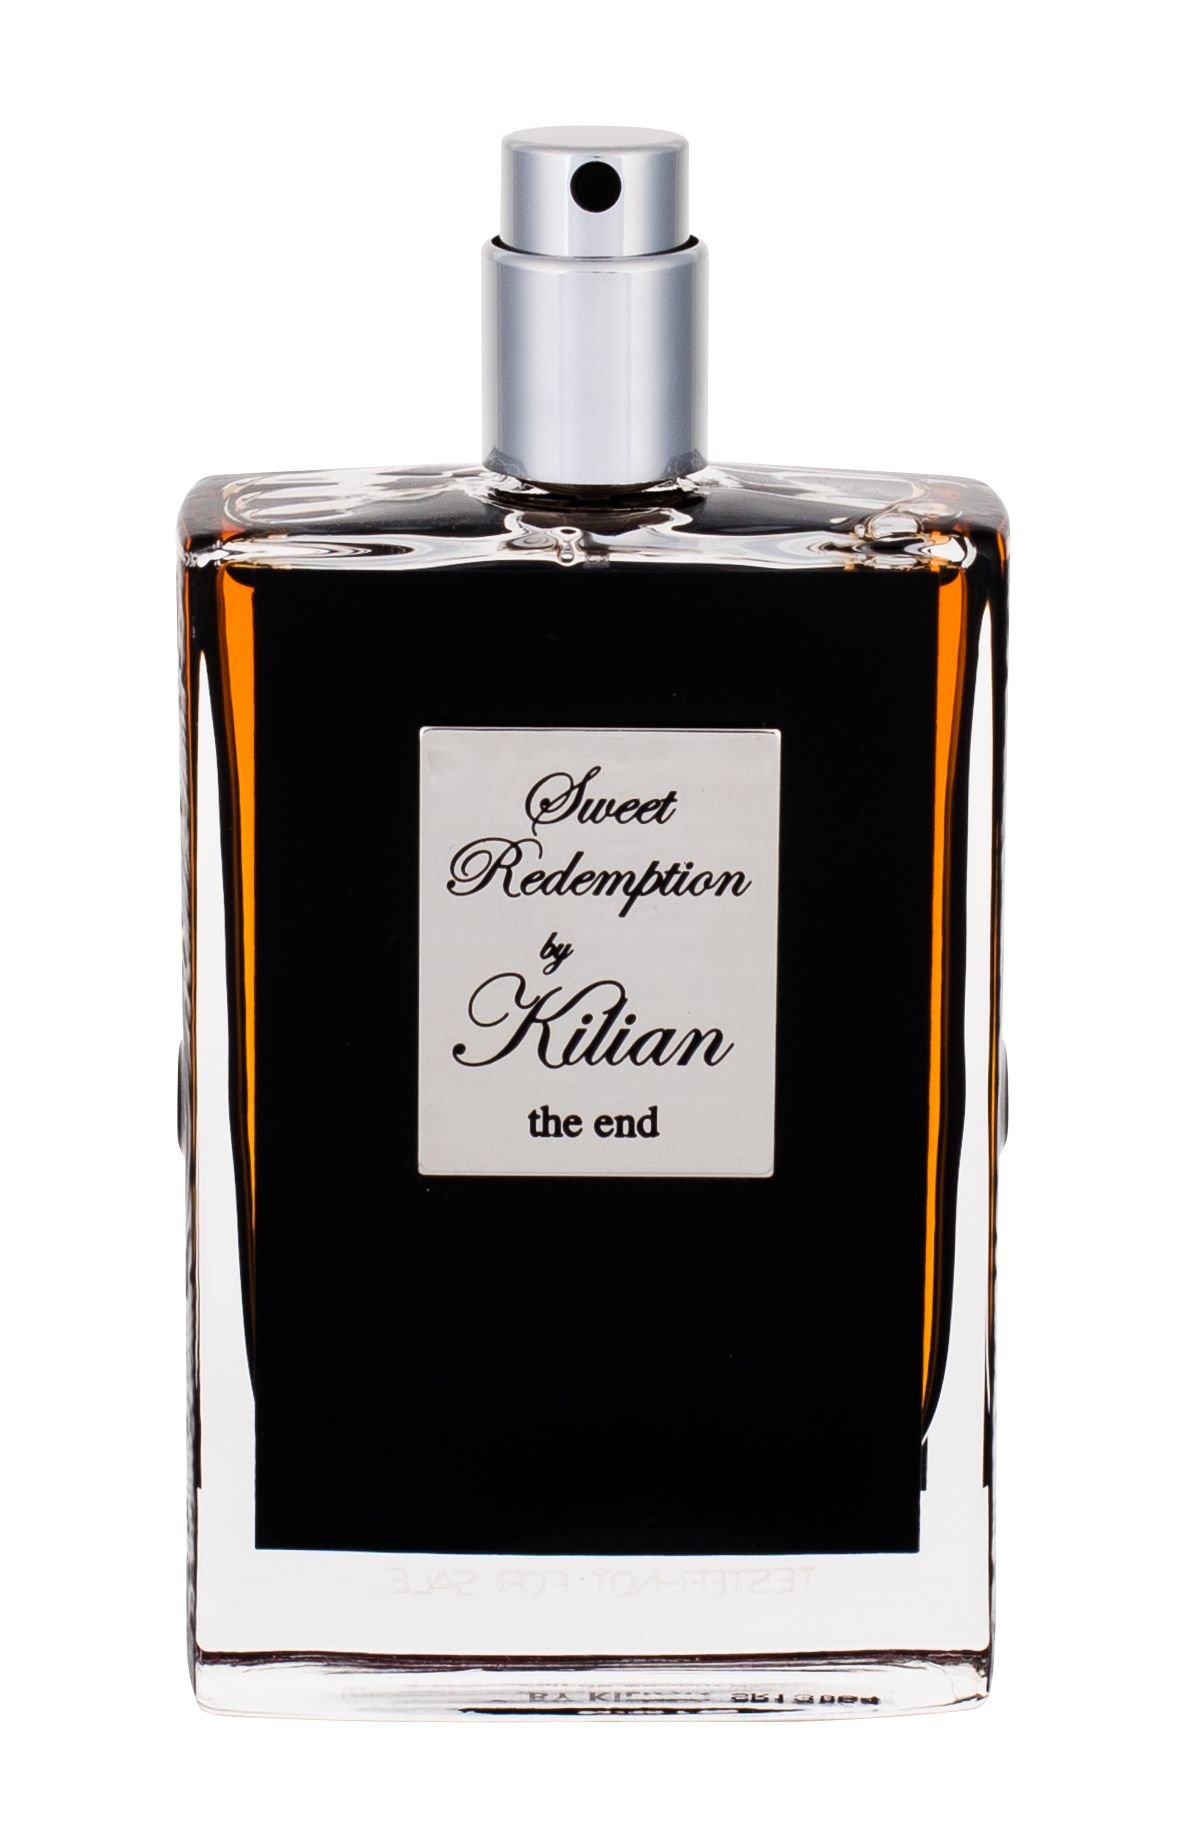 By Kilian The Narcotics EDP 50ml  Sweet Redemption